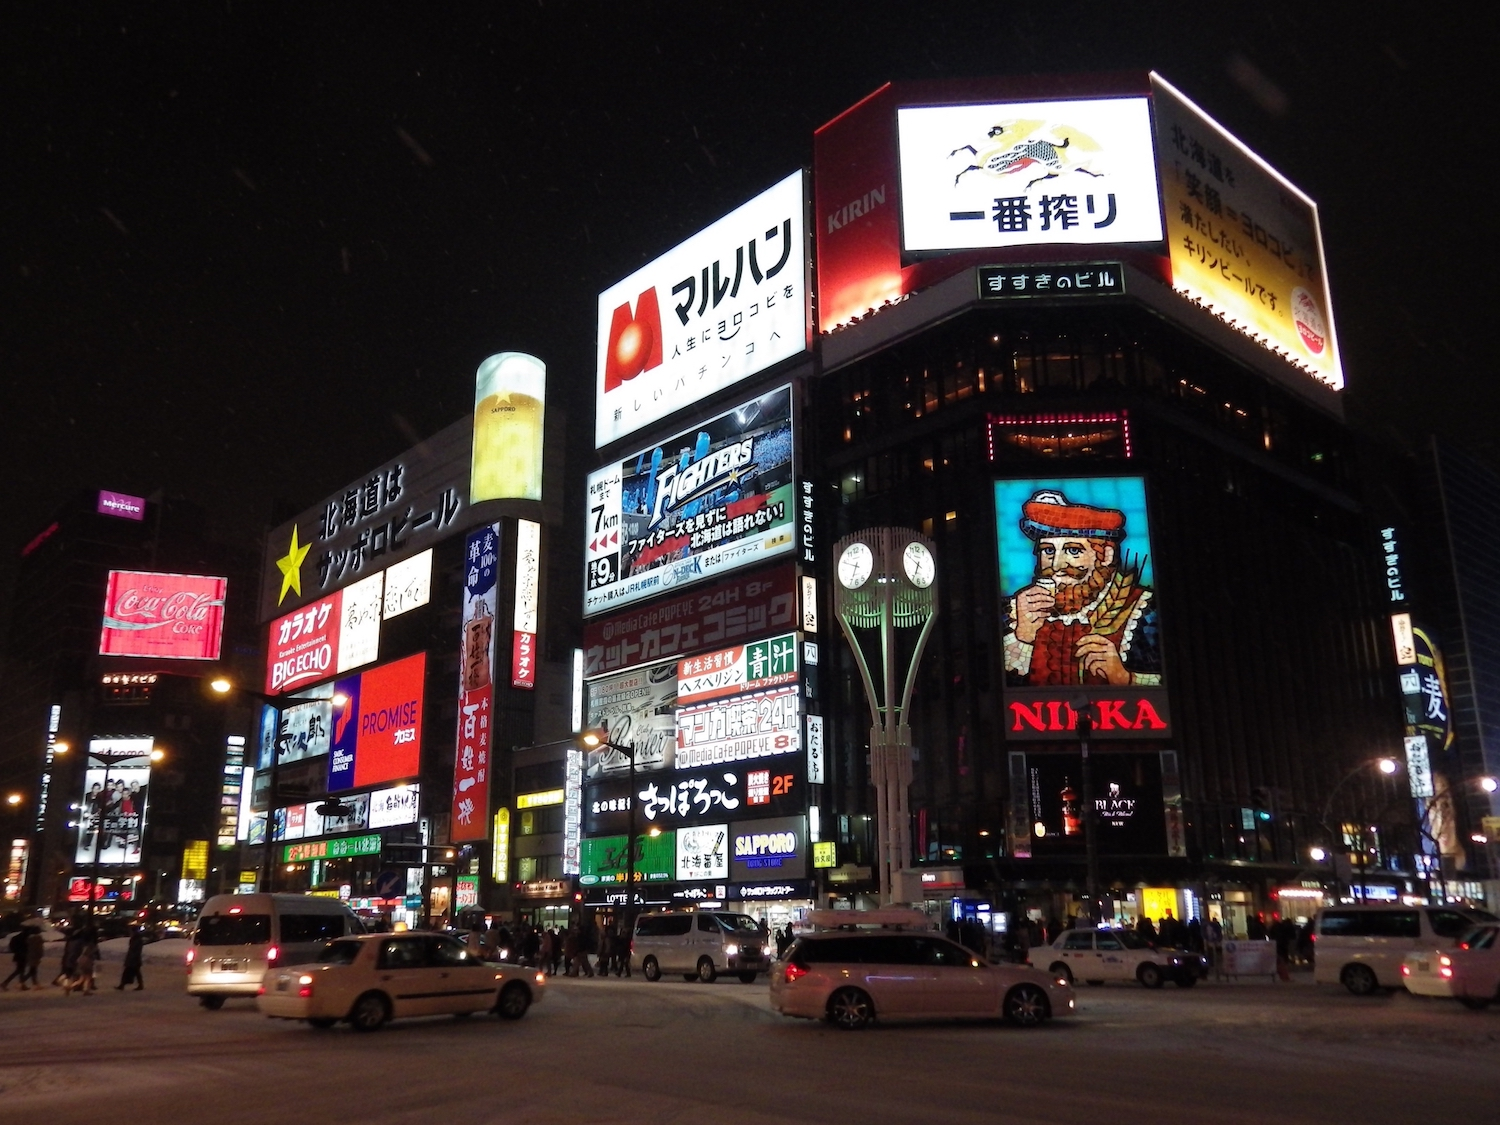 Susukino Crossing at night, with Nikka Whiskey's King of Blenders sign visible on the side of the Susukino Building.